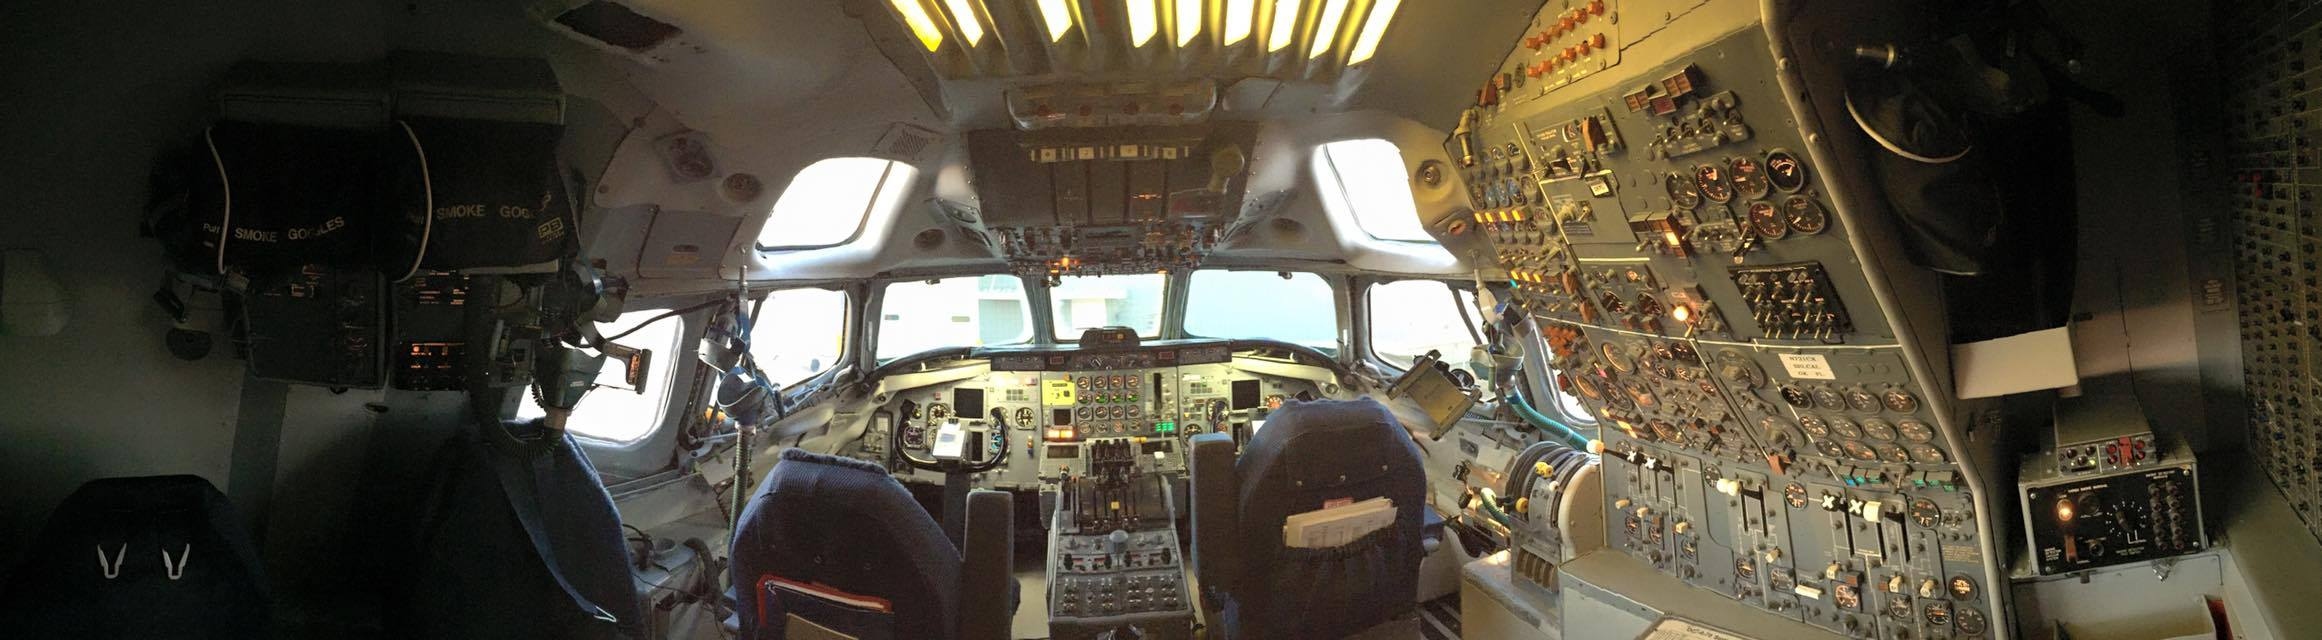 DC8 Aircraft Interior Repair by New Life Service Company of Dallas at www.newlifeservice.net